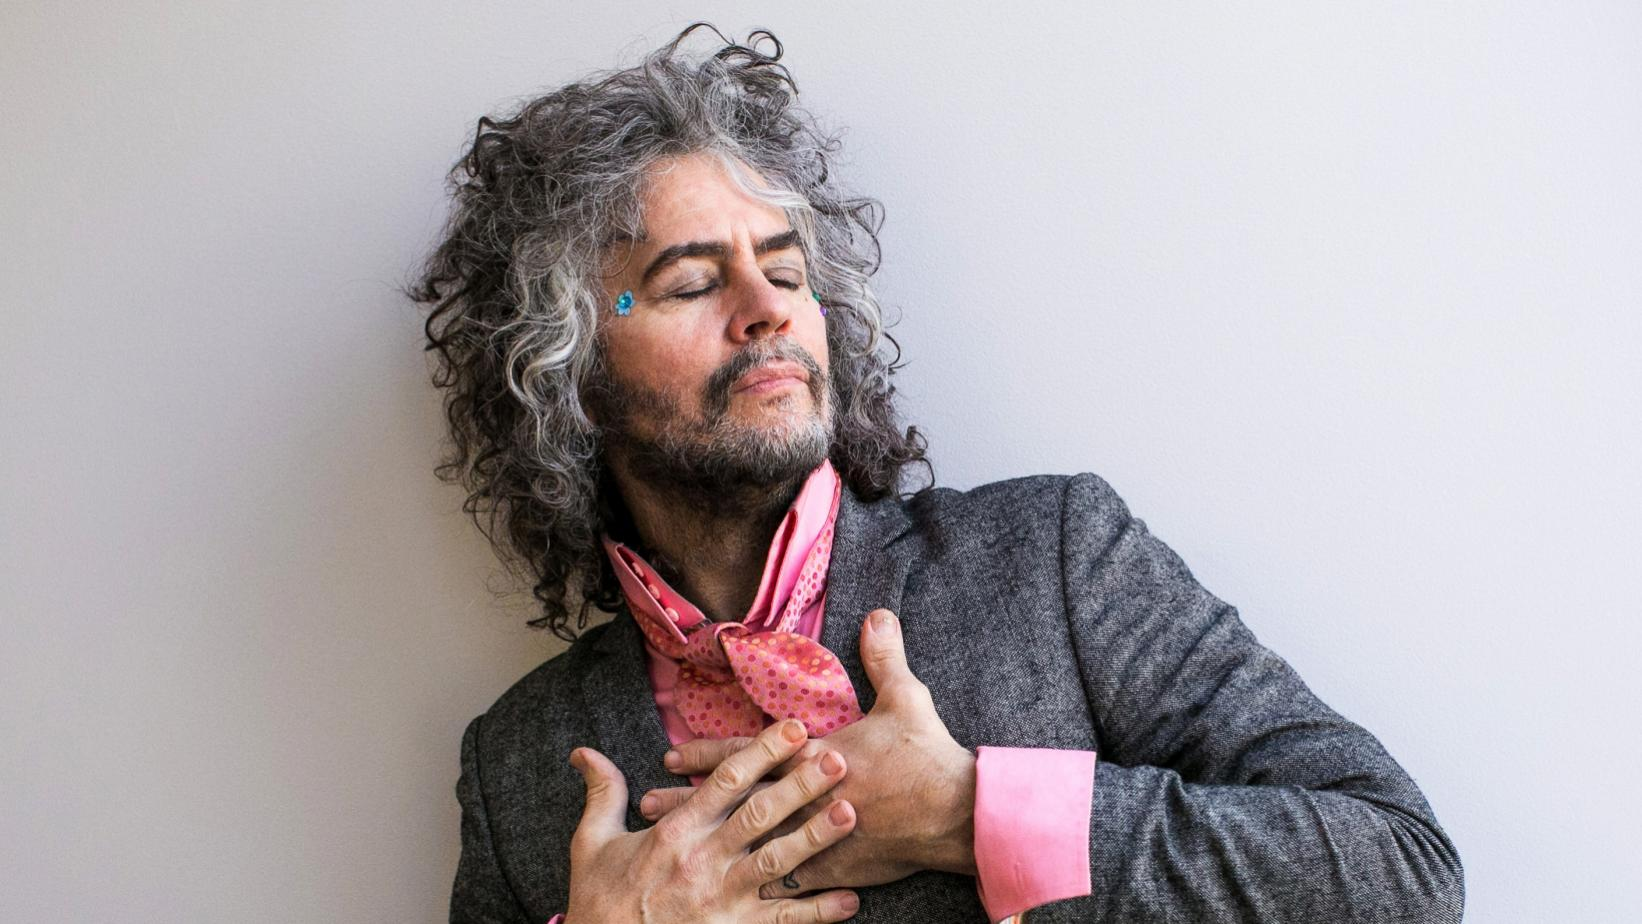 Wayne Coyne photographed in 2017